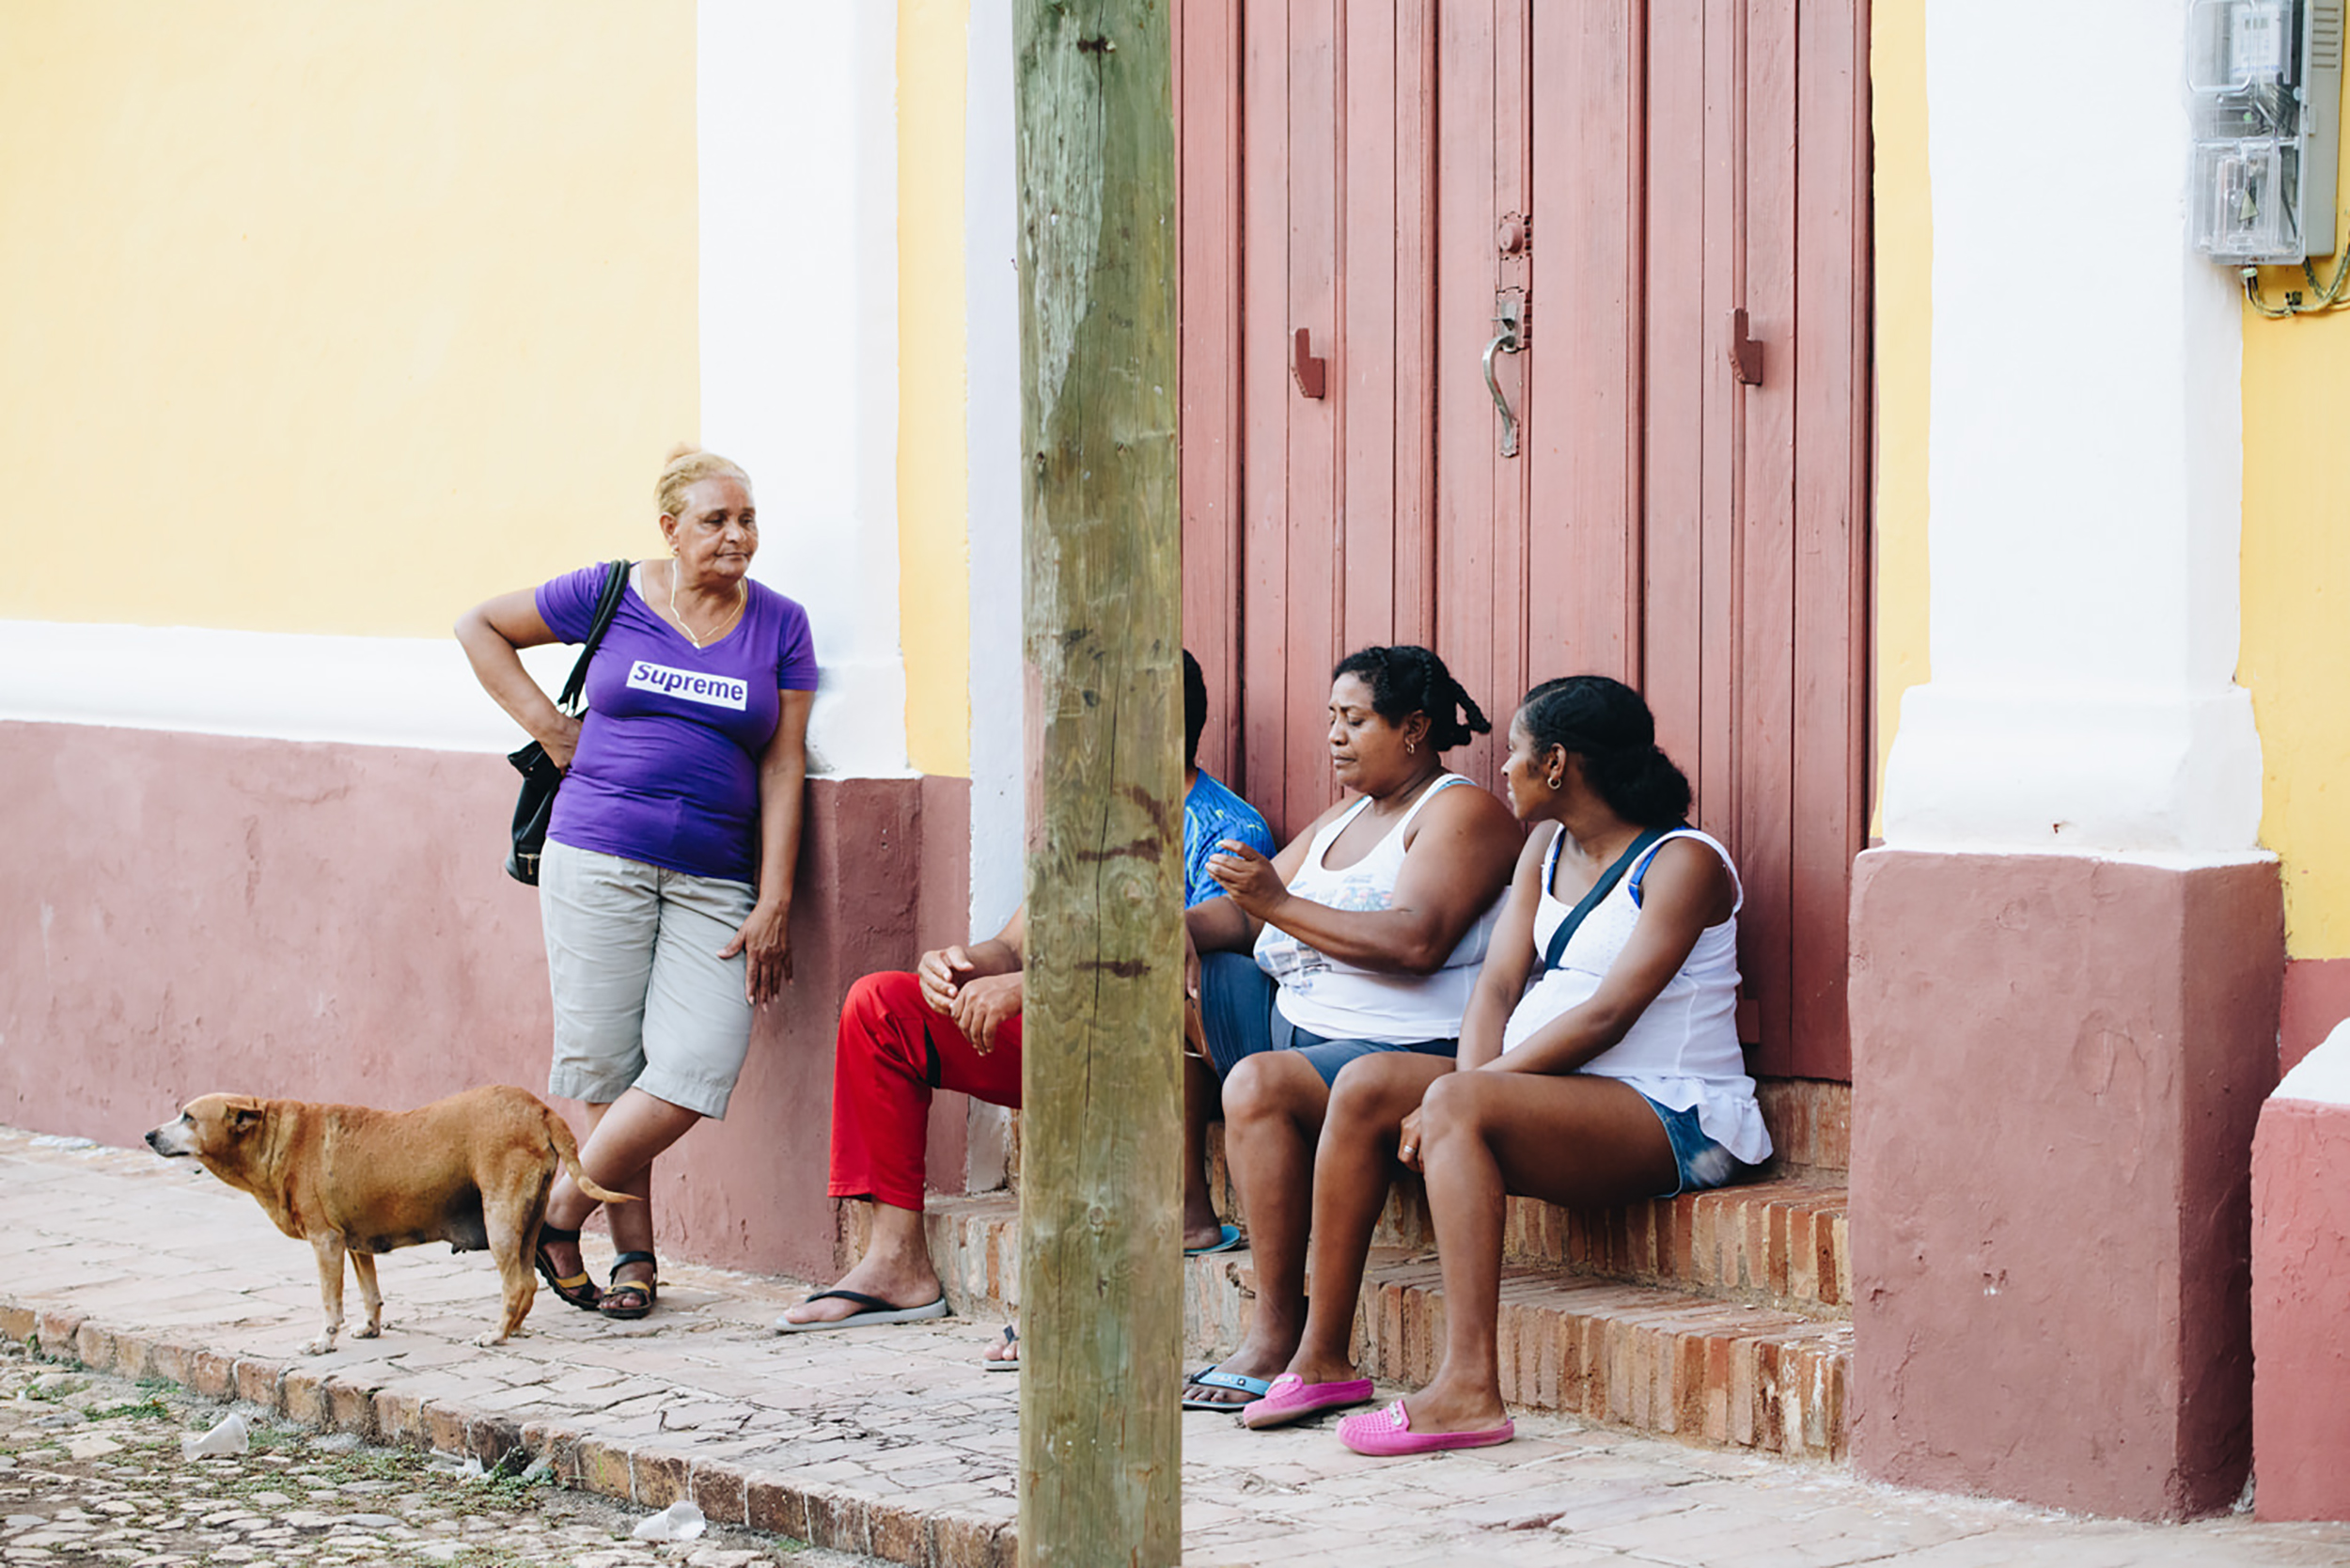 Dog hangs out with ladies on a sidewalk in Cuba